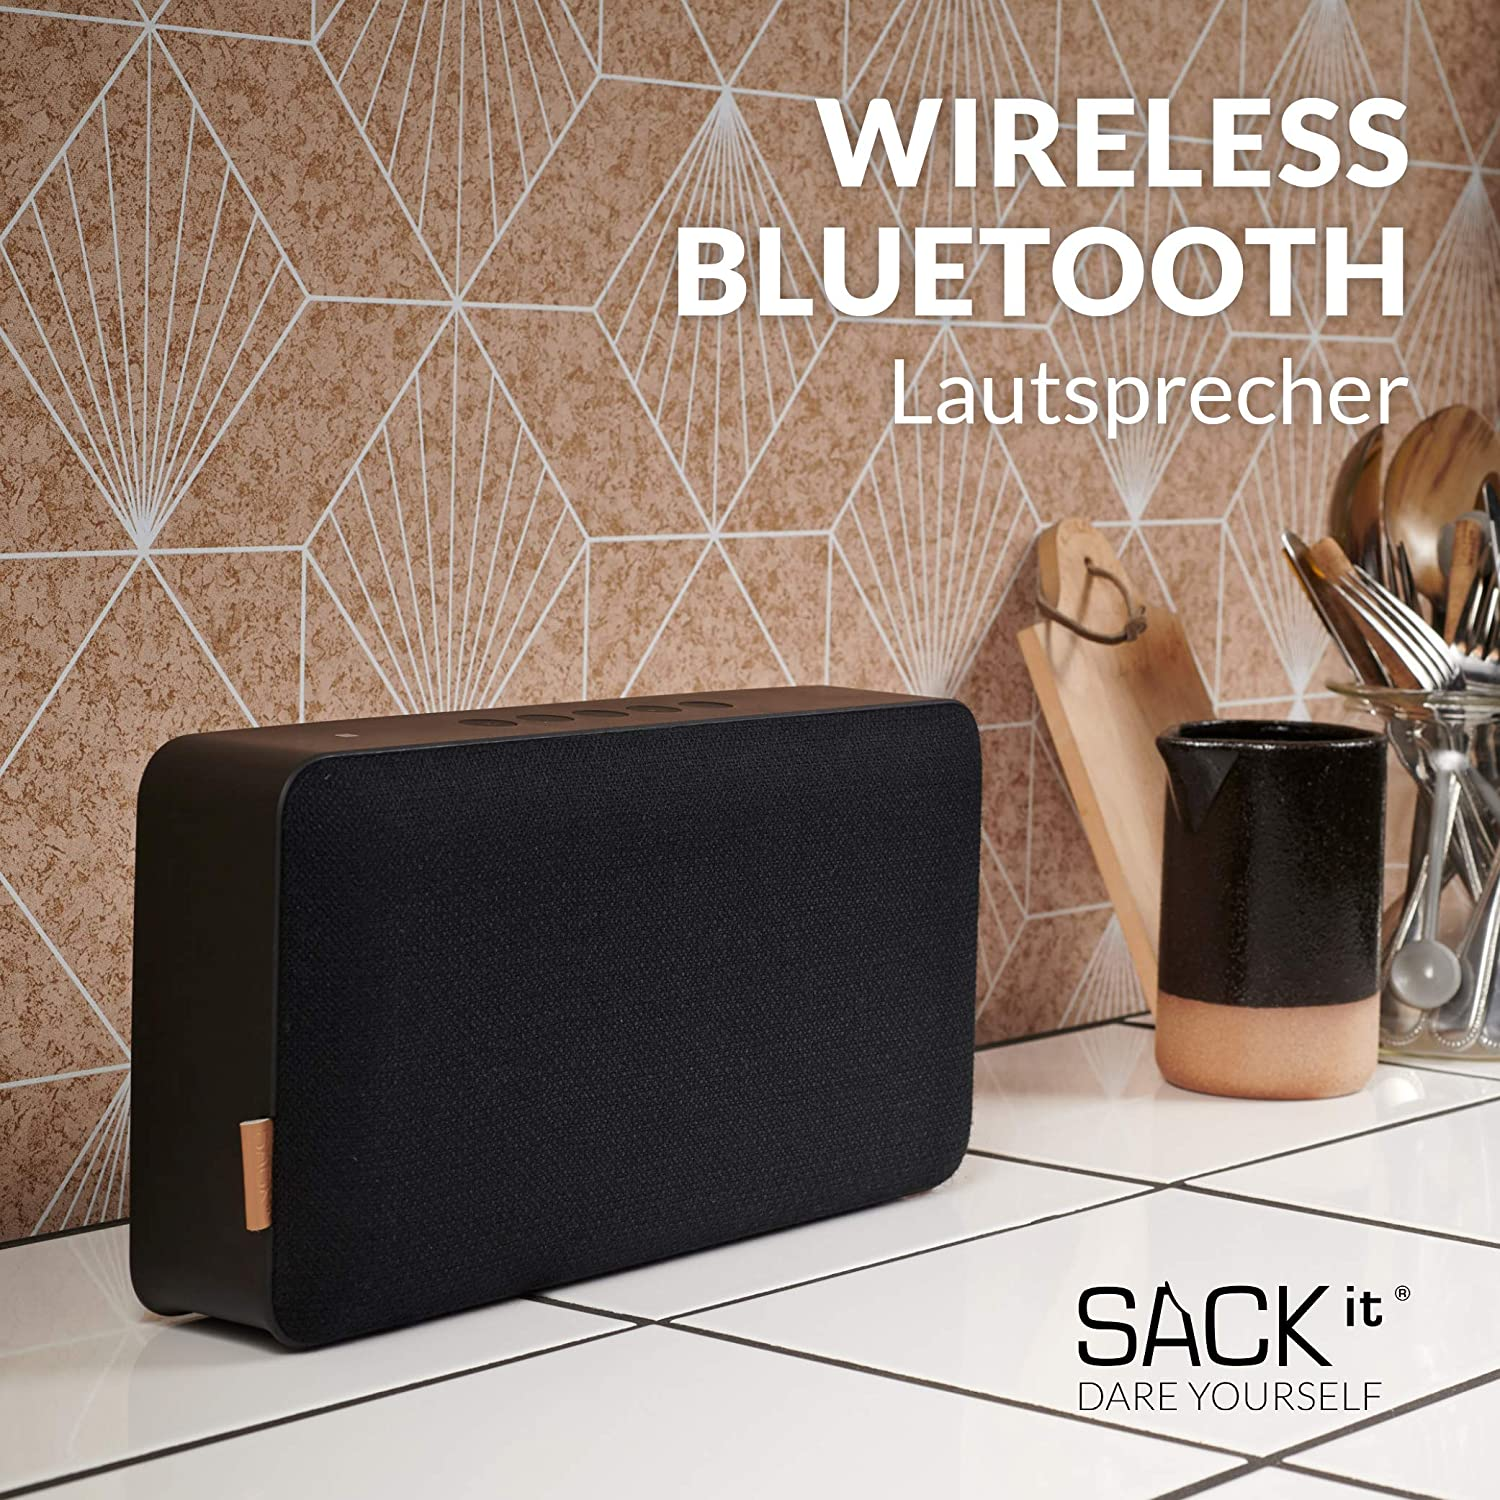 Sackit Moveit X Bluetooth Speaker With Up To 12 Hours Of Run Time And Charging Function Music Box With Interchangeable Design Wireless Speaker For Home And Travel Black